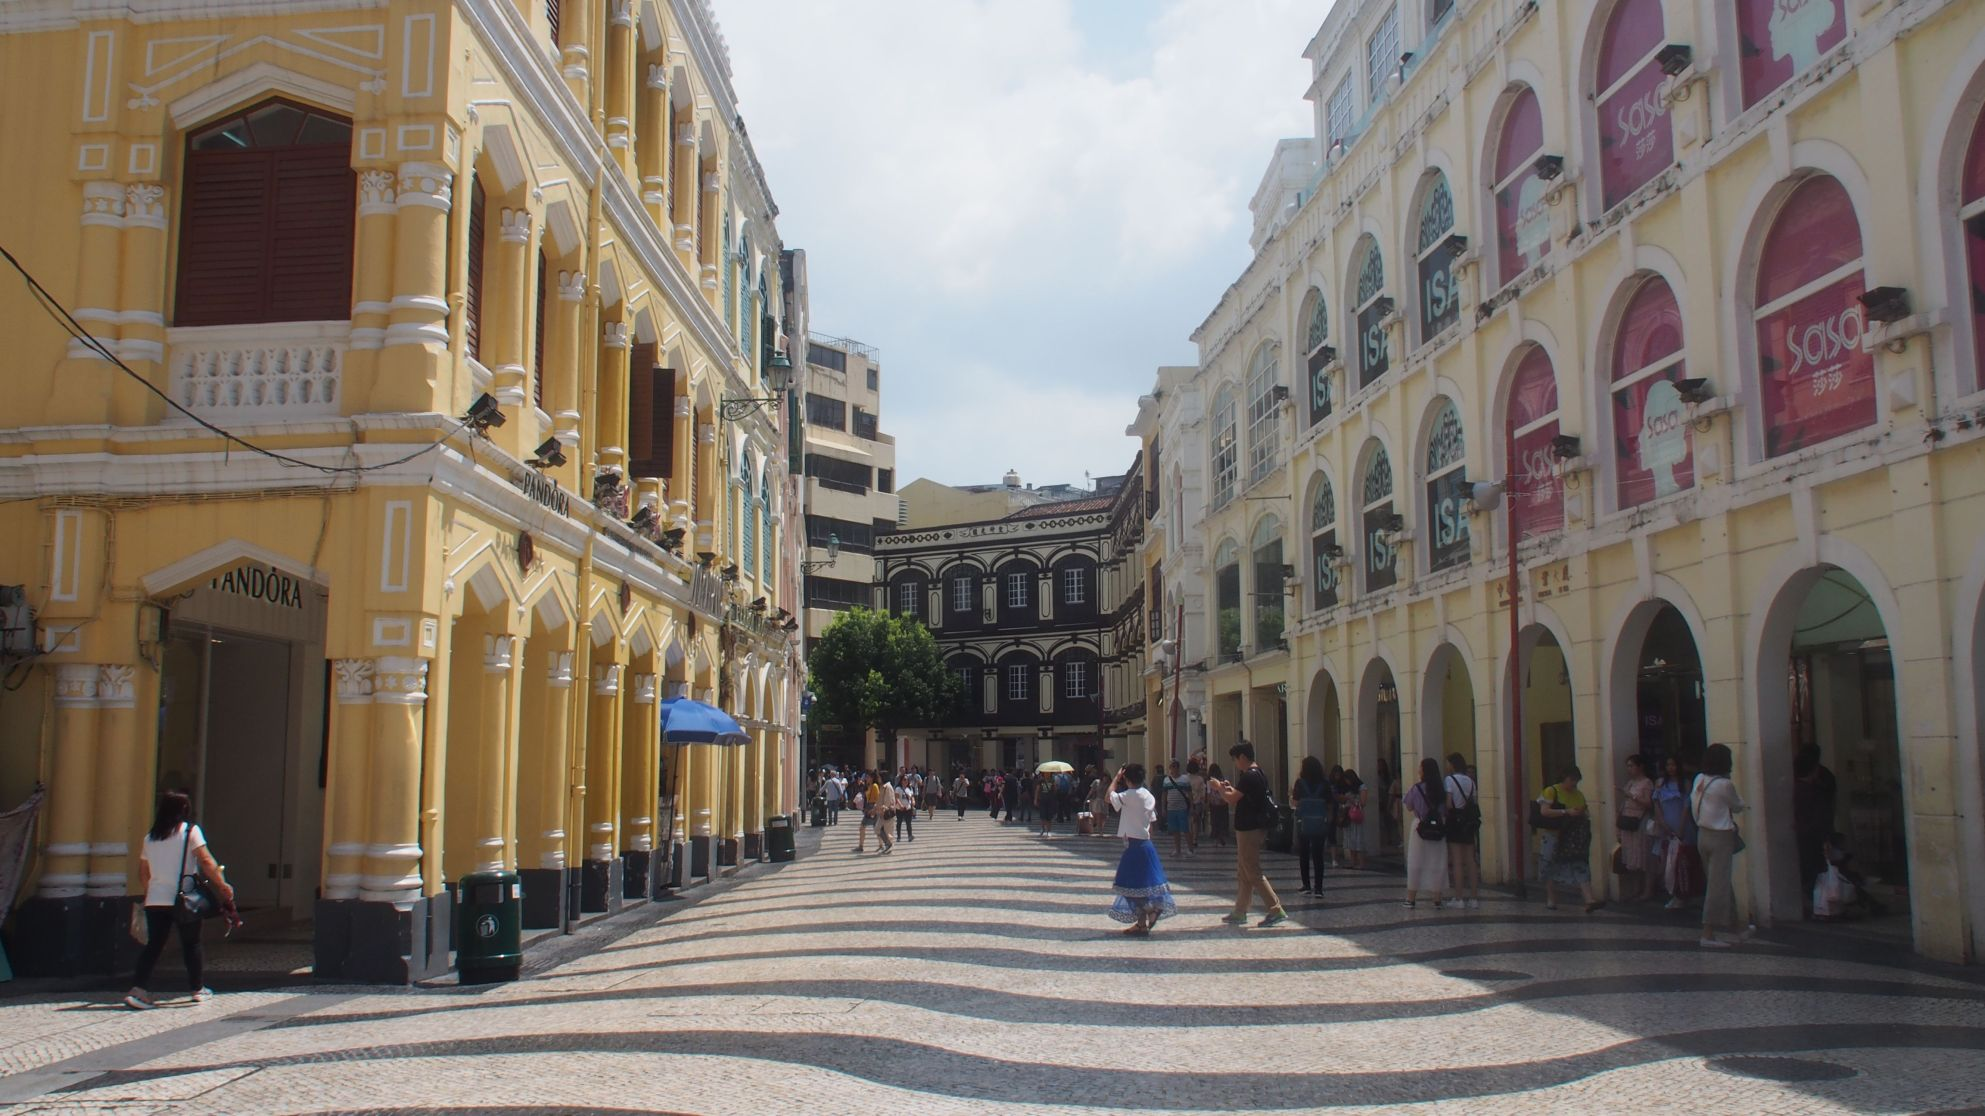 LARGO-DO-SENADO-MACAO-EN-UN-DÍA